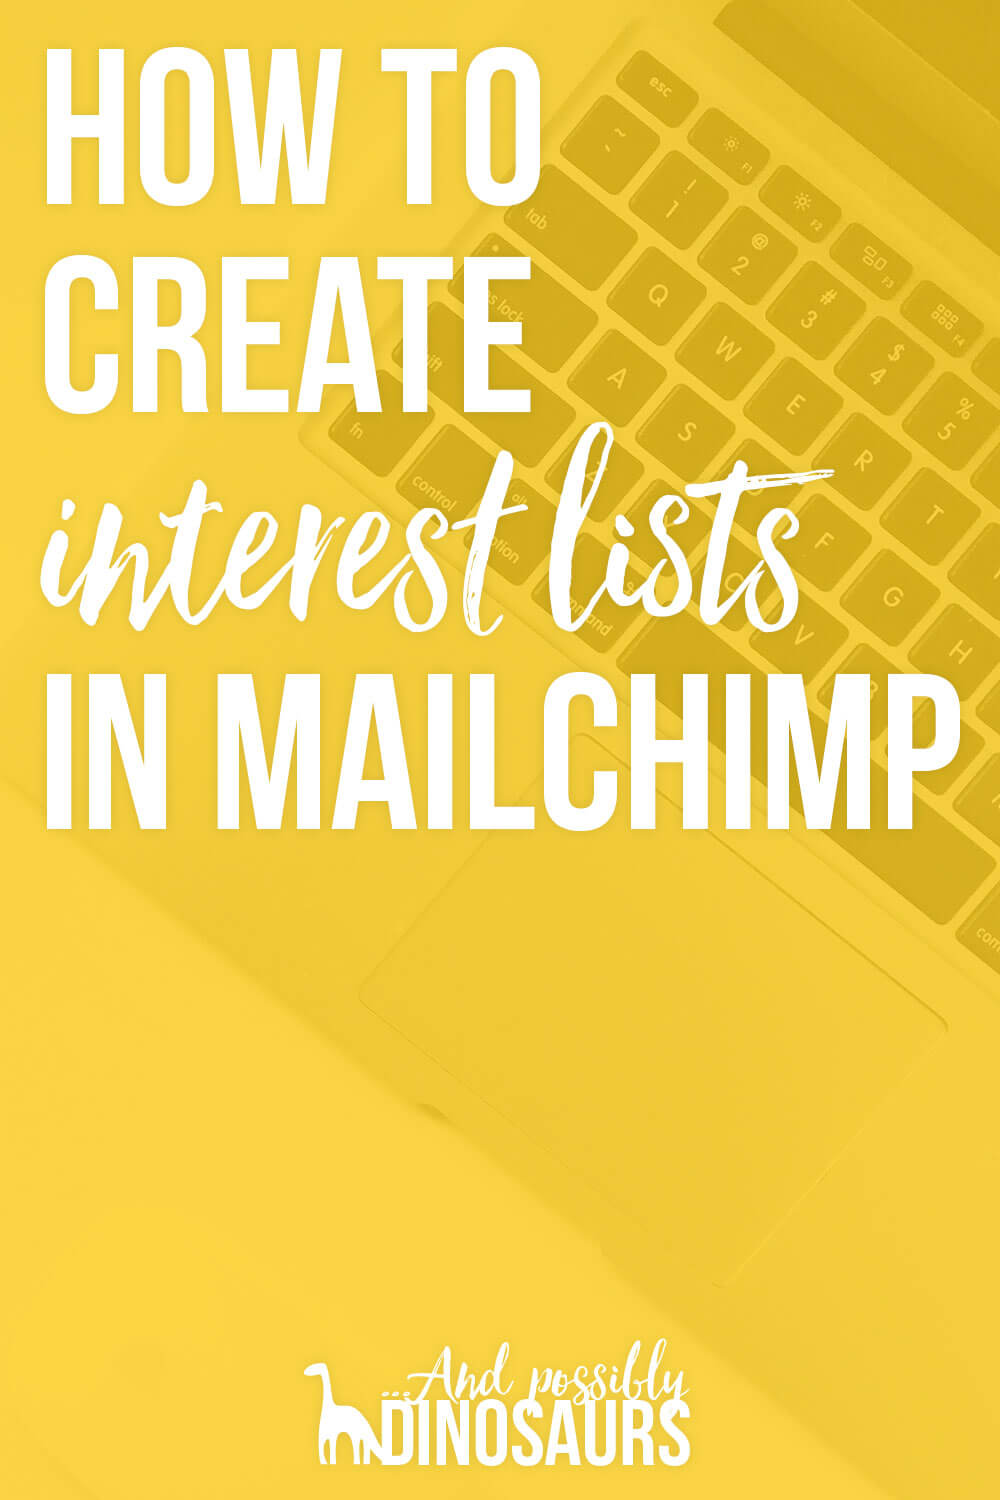 People love being able to set up interest lists in ConvertKit. But it's just as possible to create interest lists in Mailchimp! Here's how to segment your email list by interest.